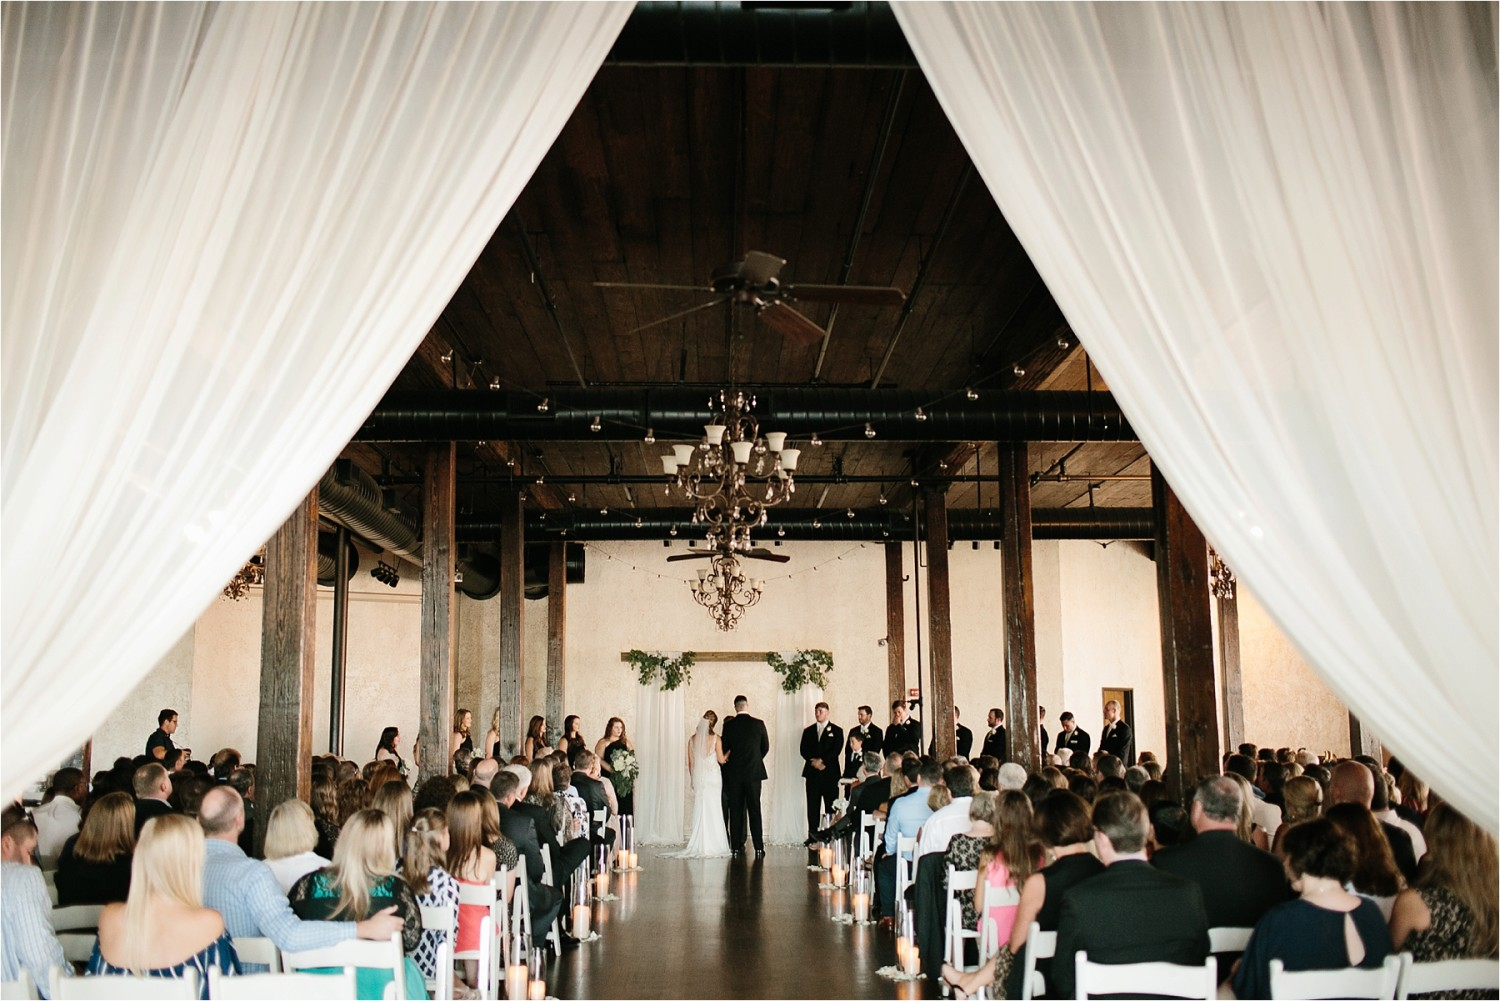 Holly + Jordan __ a black, gold, and greenery organic wedding at The Phoenix Ballroom in Waco, TX by North Texas Wedding Photographer Rachel Meagan Photography __ 60